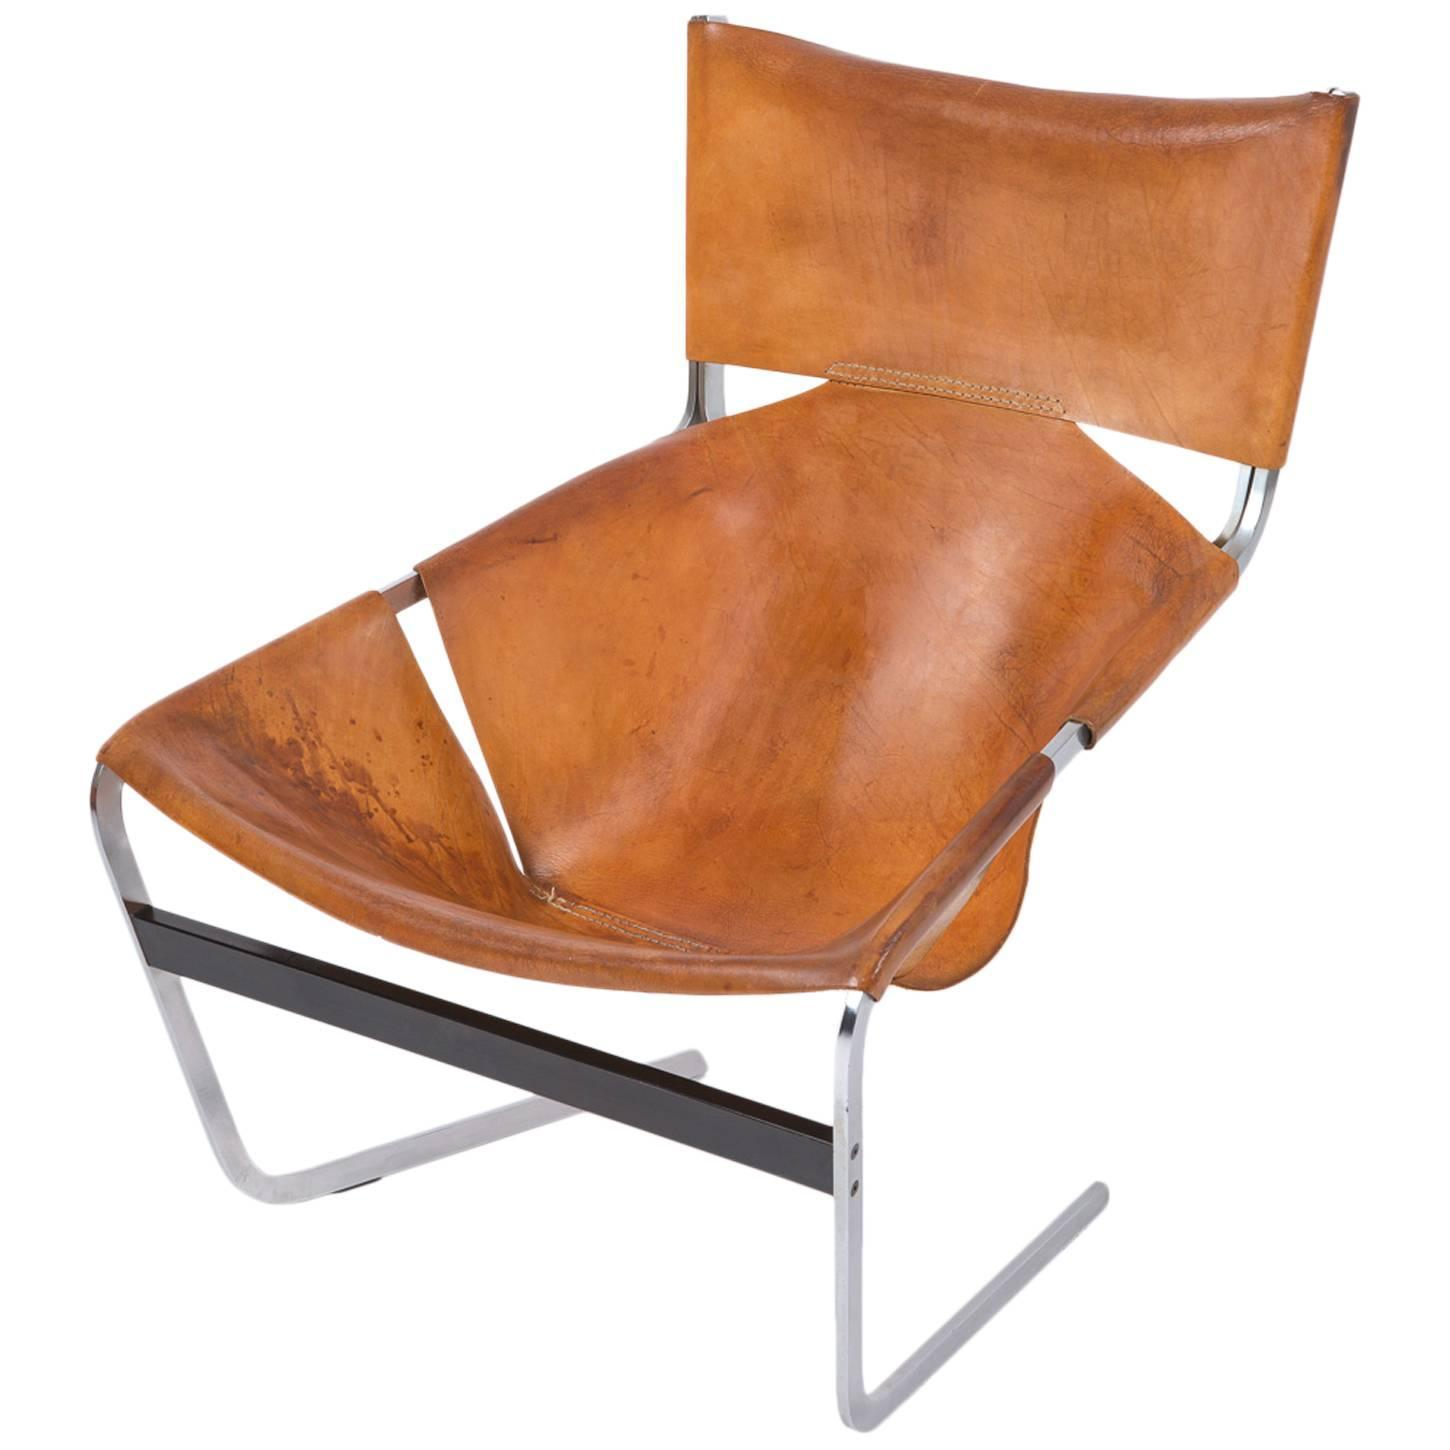 Pierre Paulin Artifort F444 Artifort in Brown Leather Chair 1965